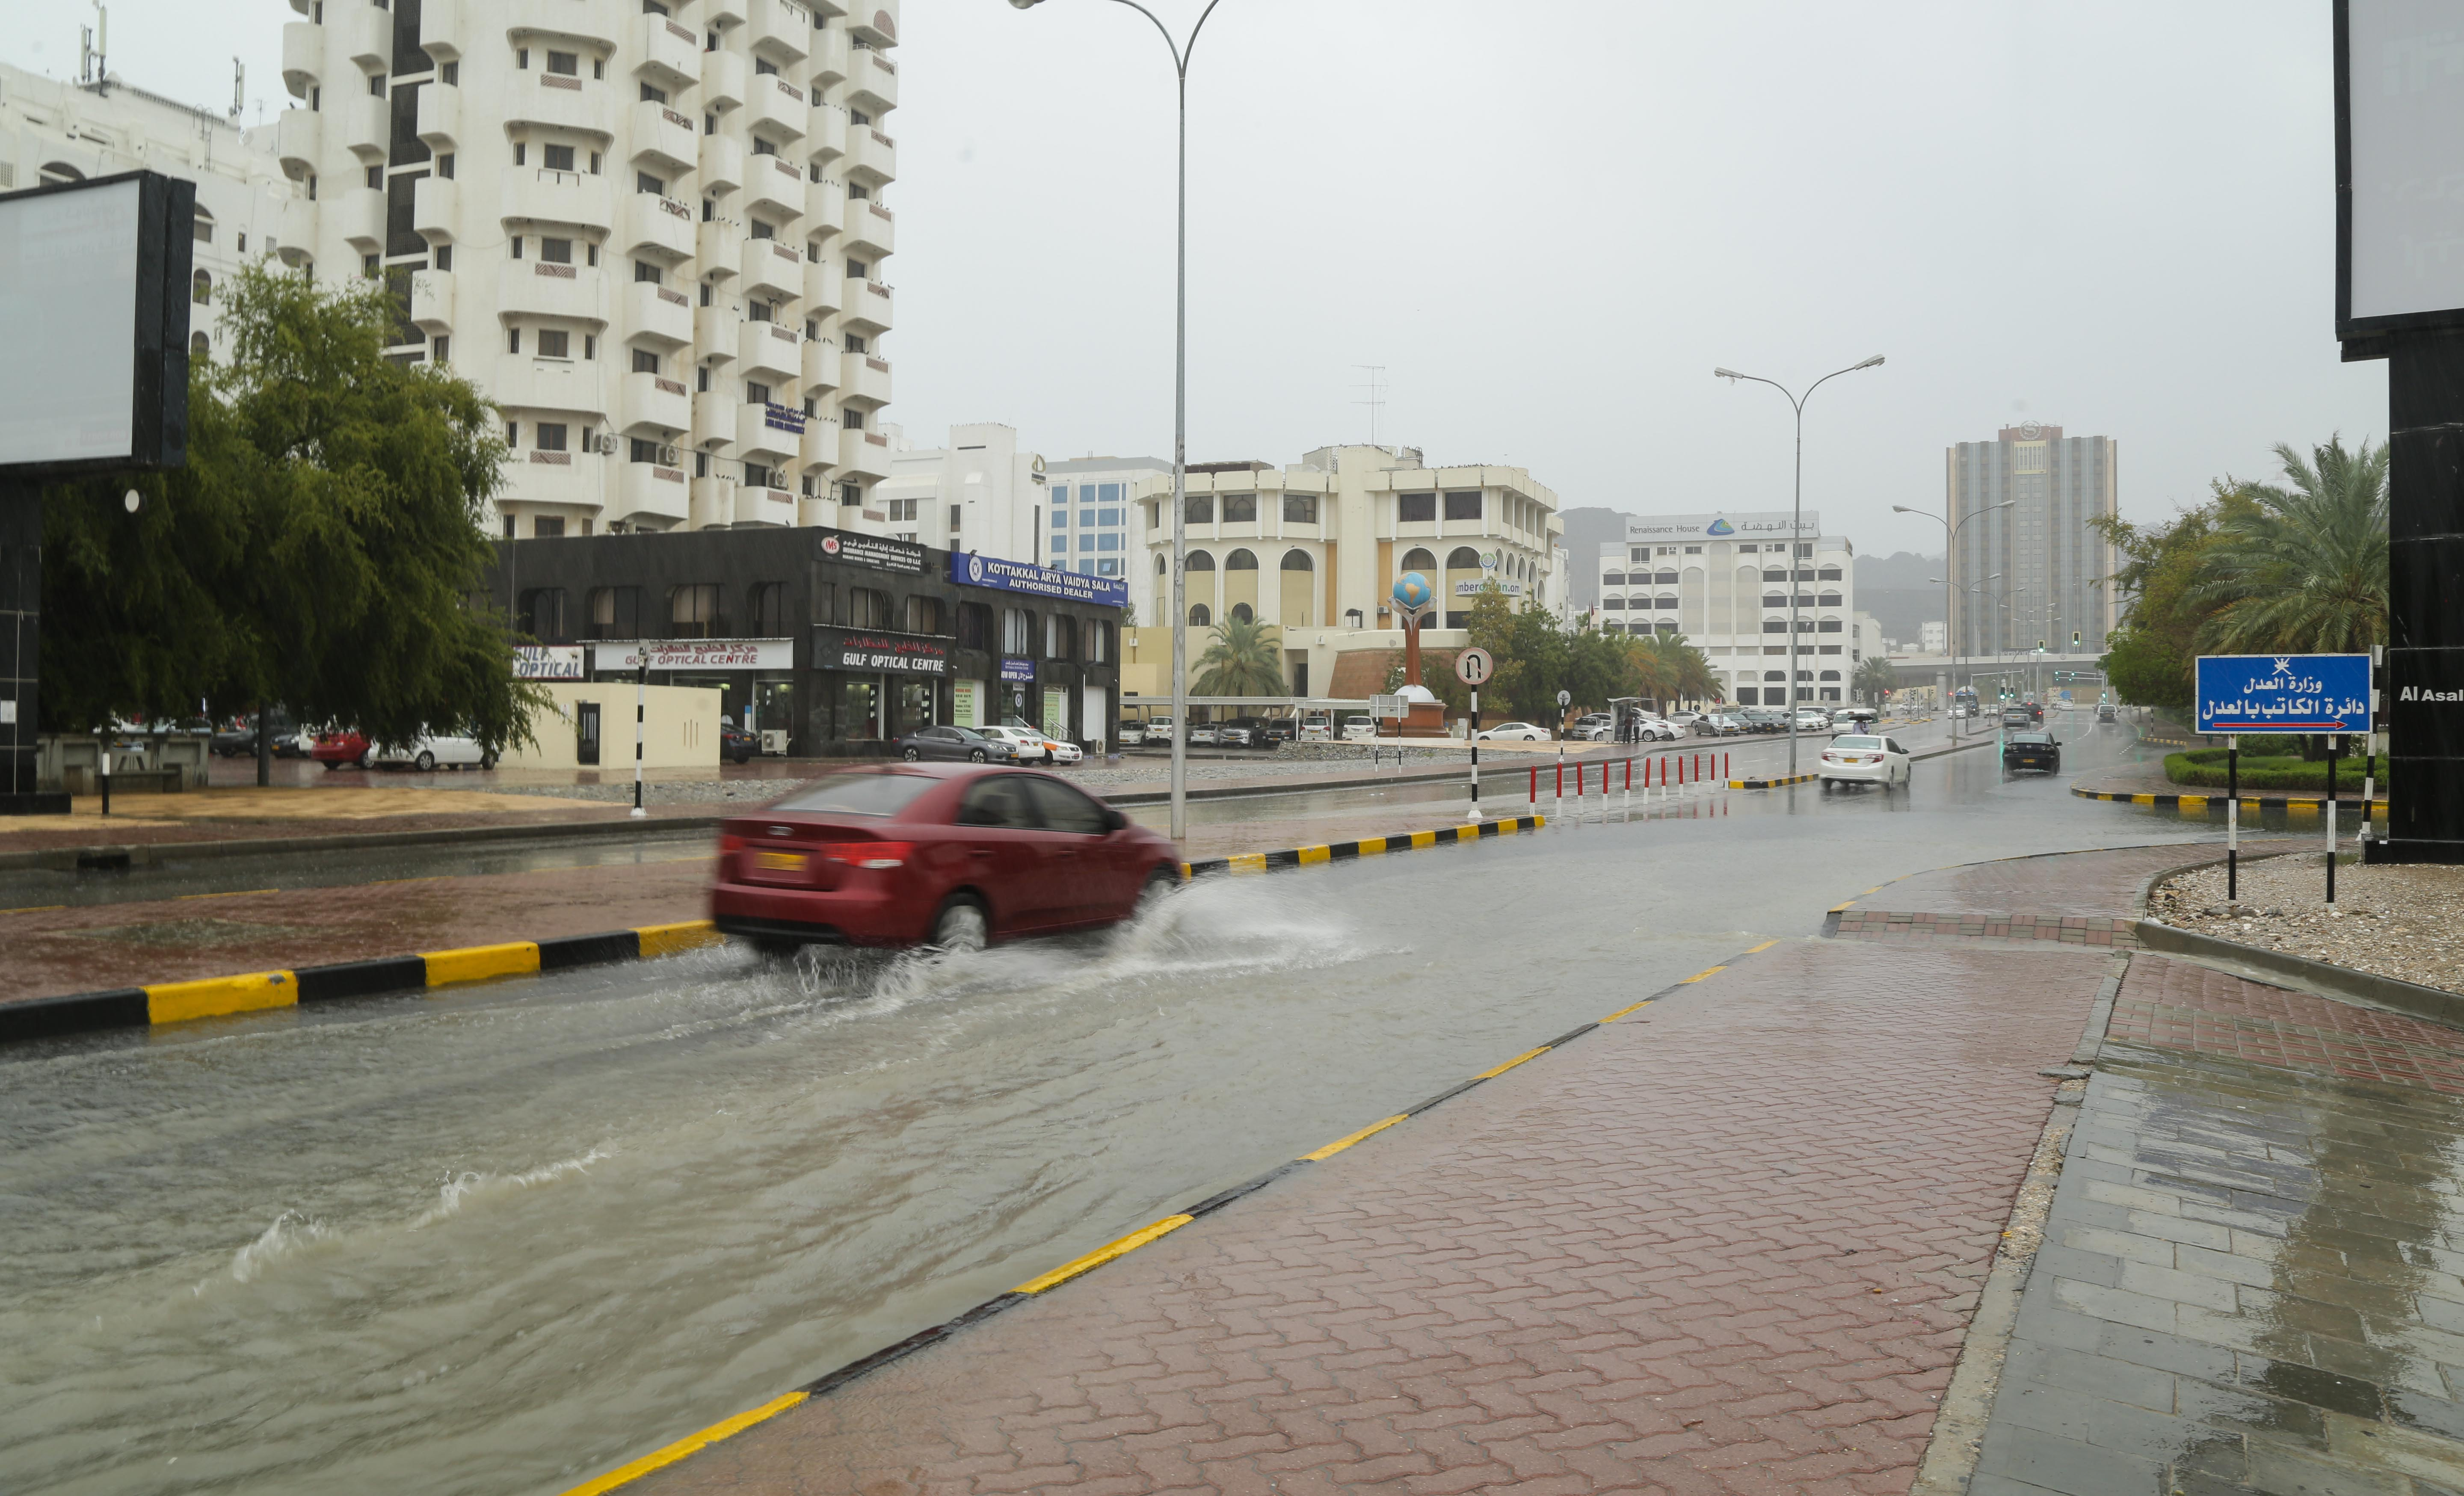 In pictures: Rainfall recorded across many parts of Oman